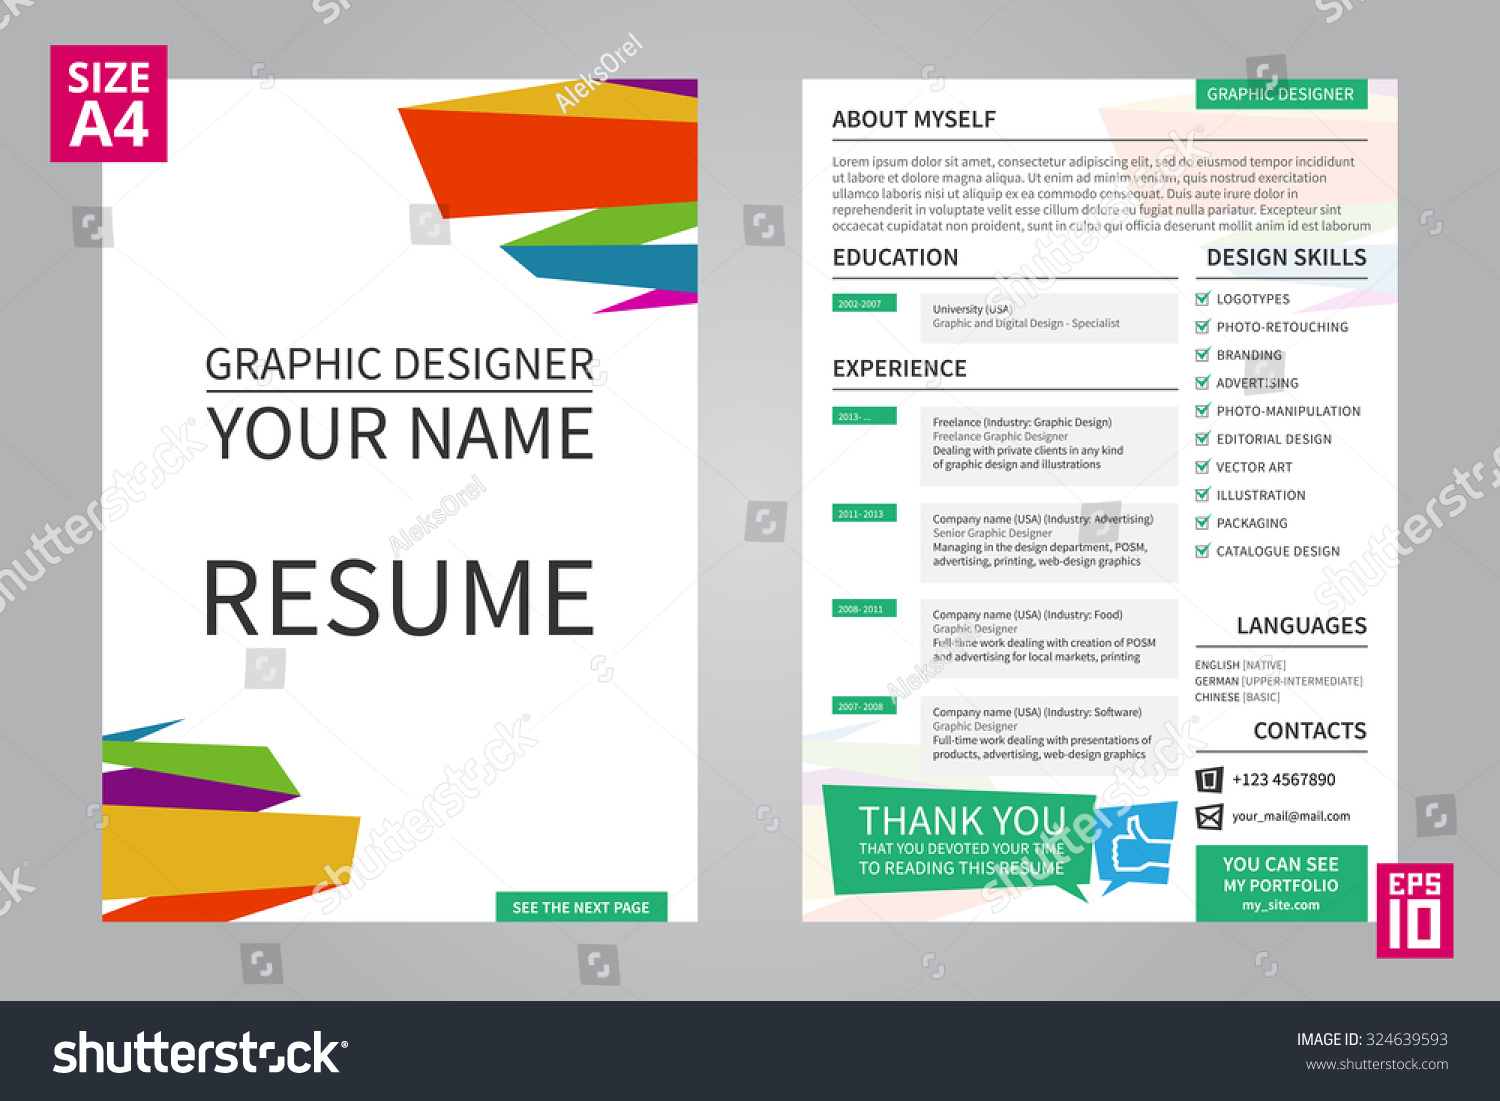 Resume title page cover page resume resume template cover letter sign off genaveco carpinteria rural friedrich sample esl teacher yelopaper Gallery